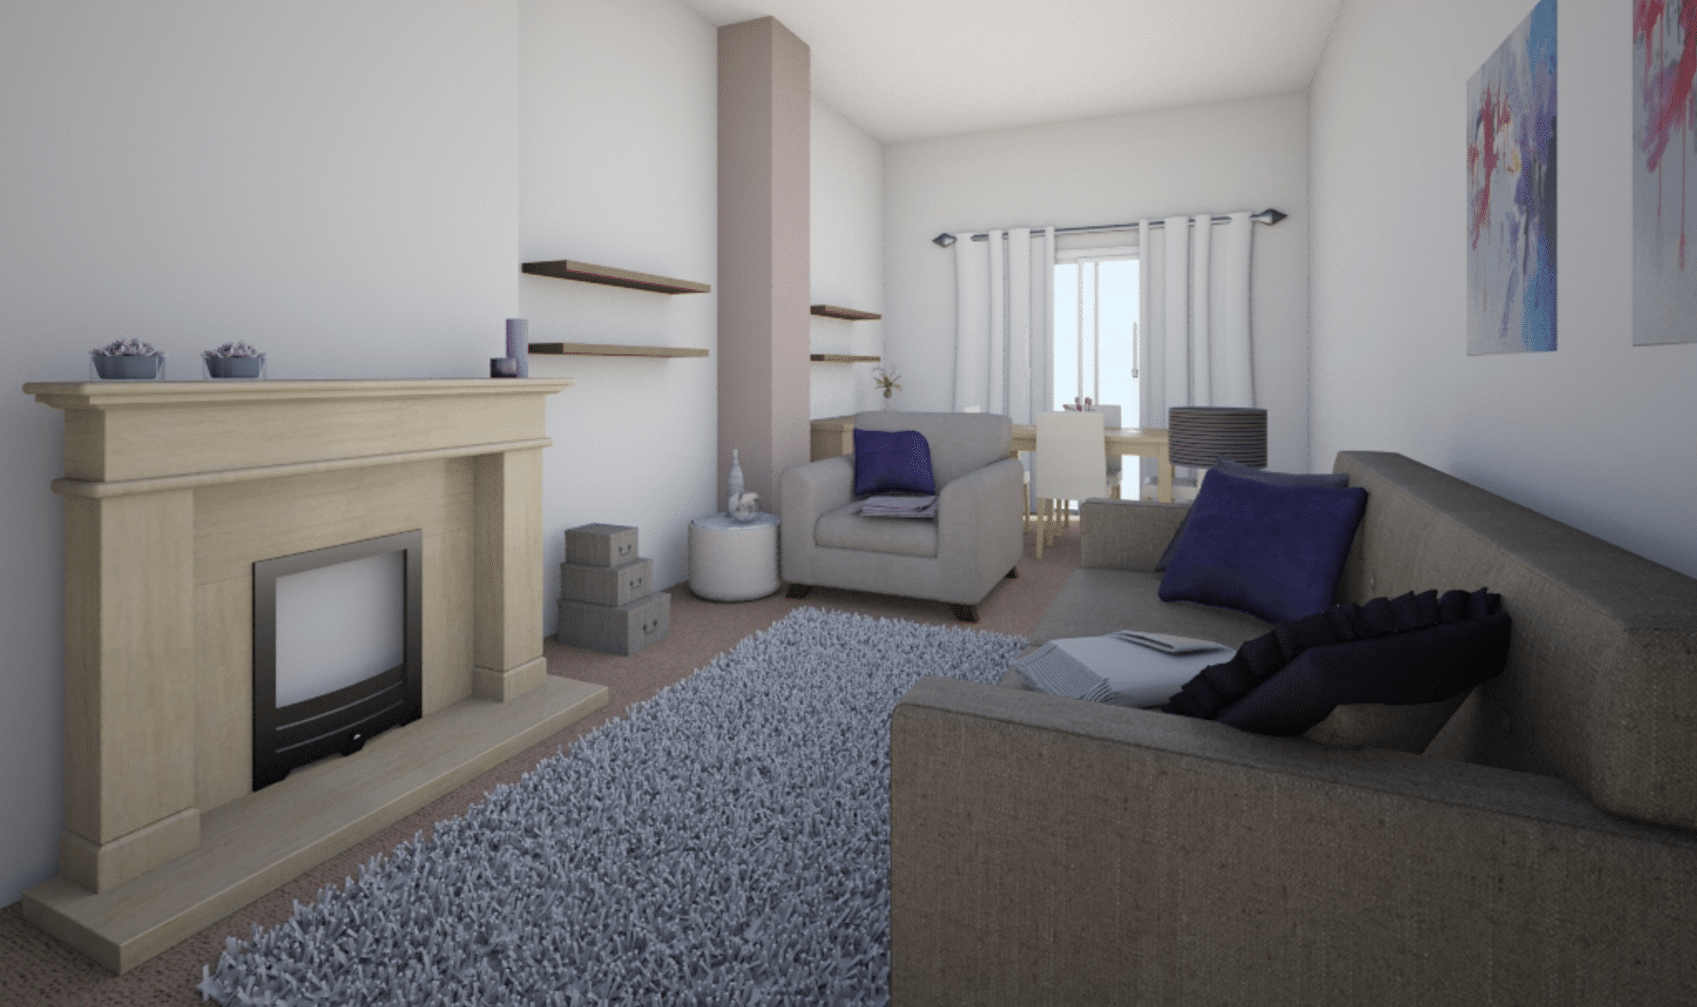 Living room - 3D view